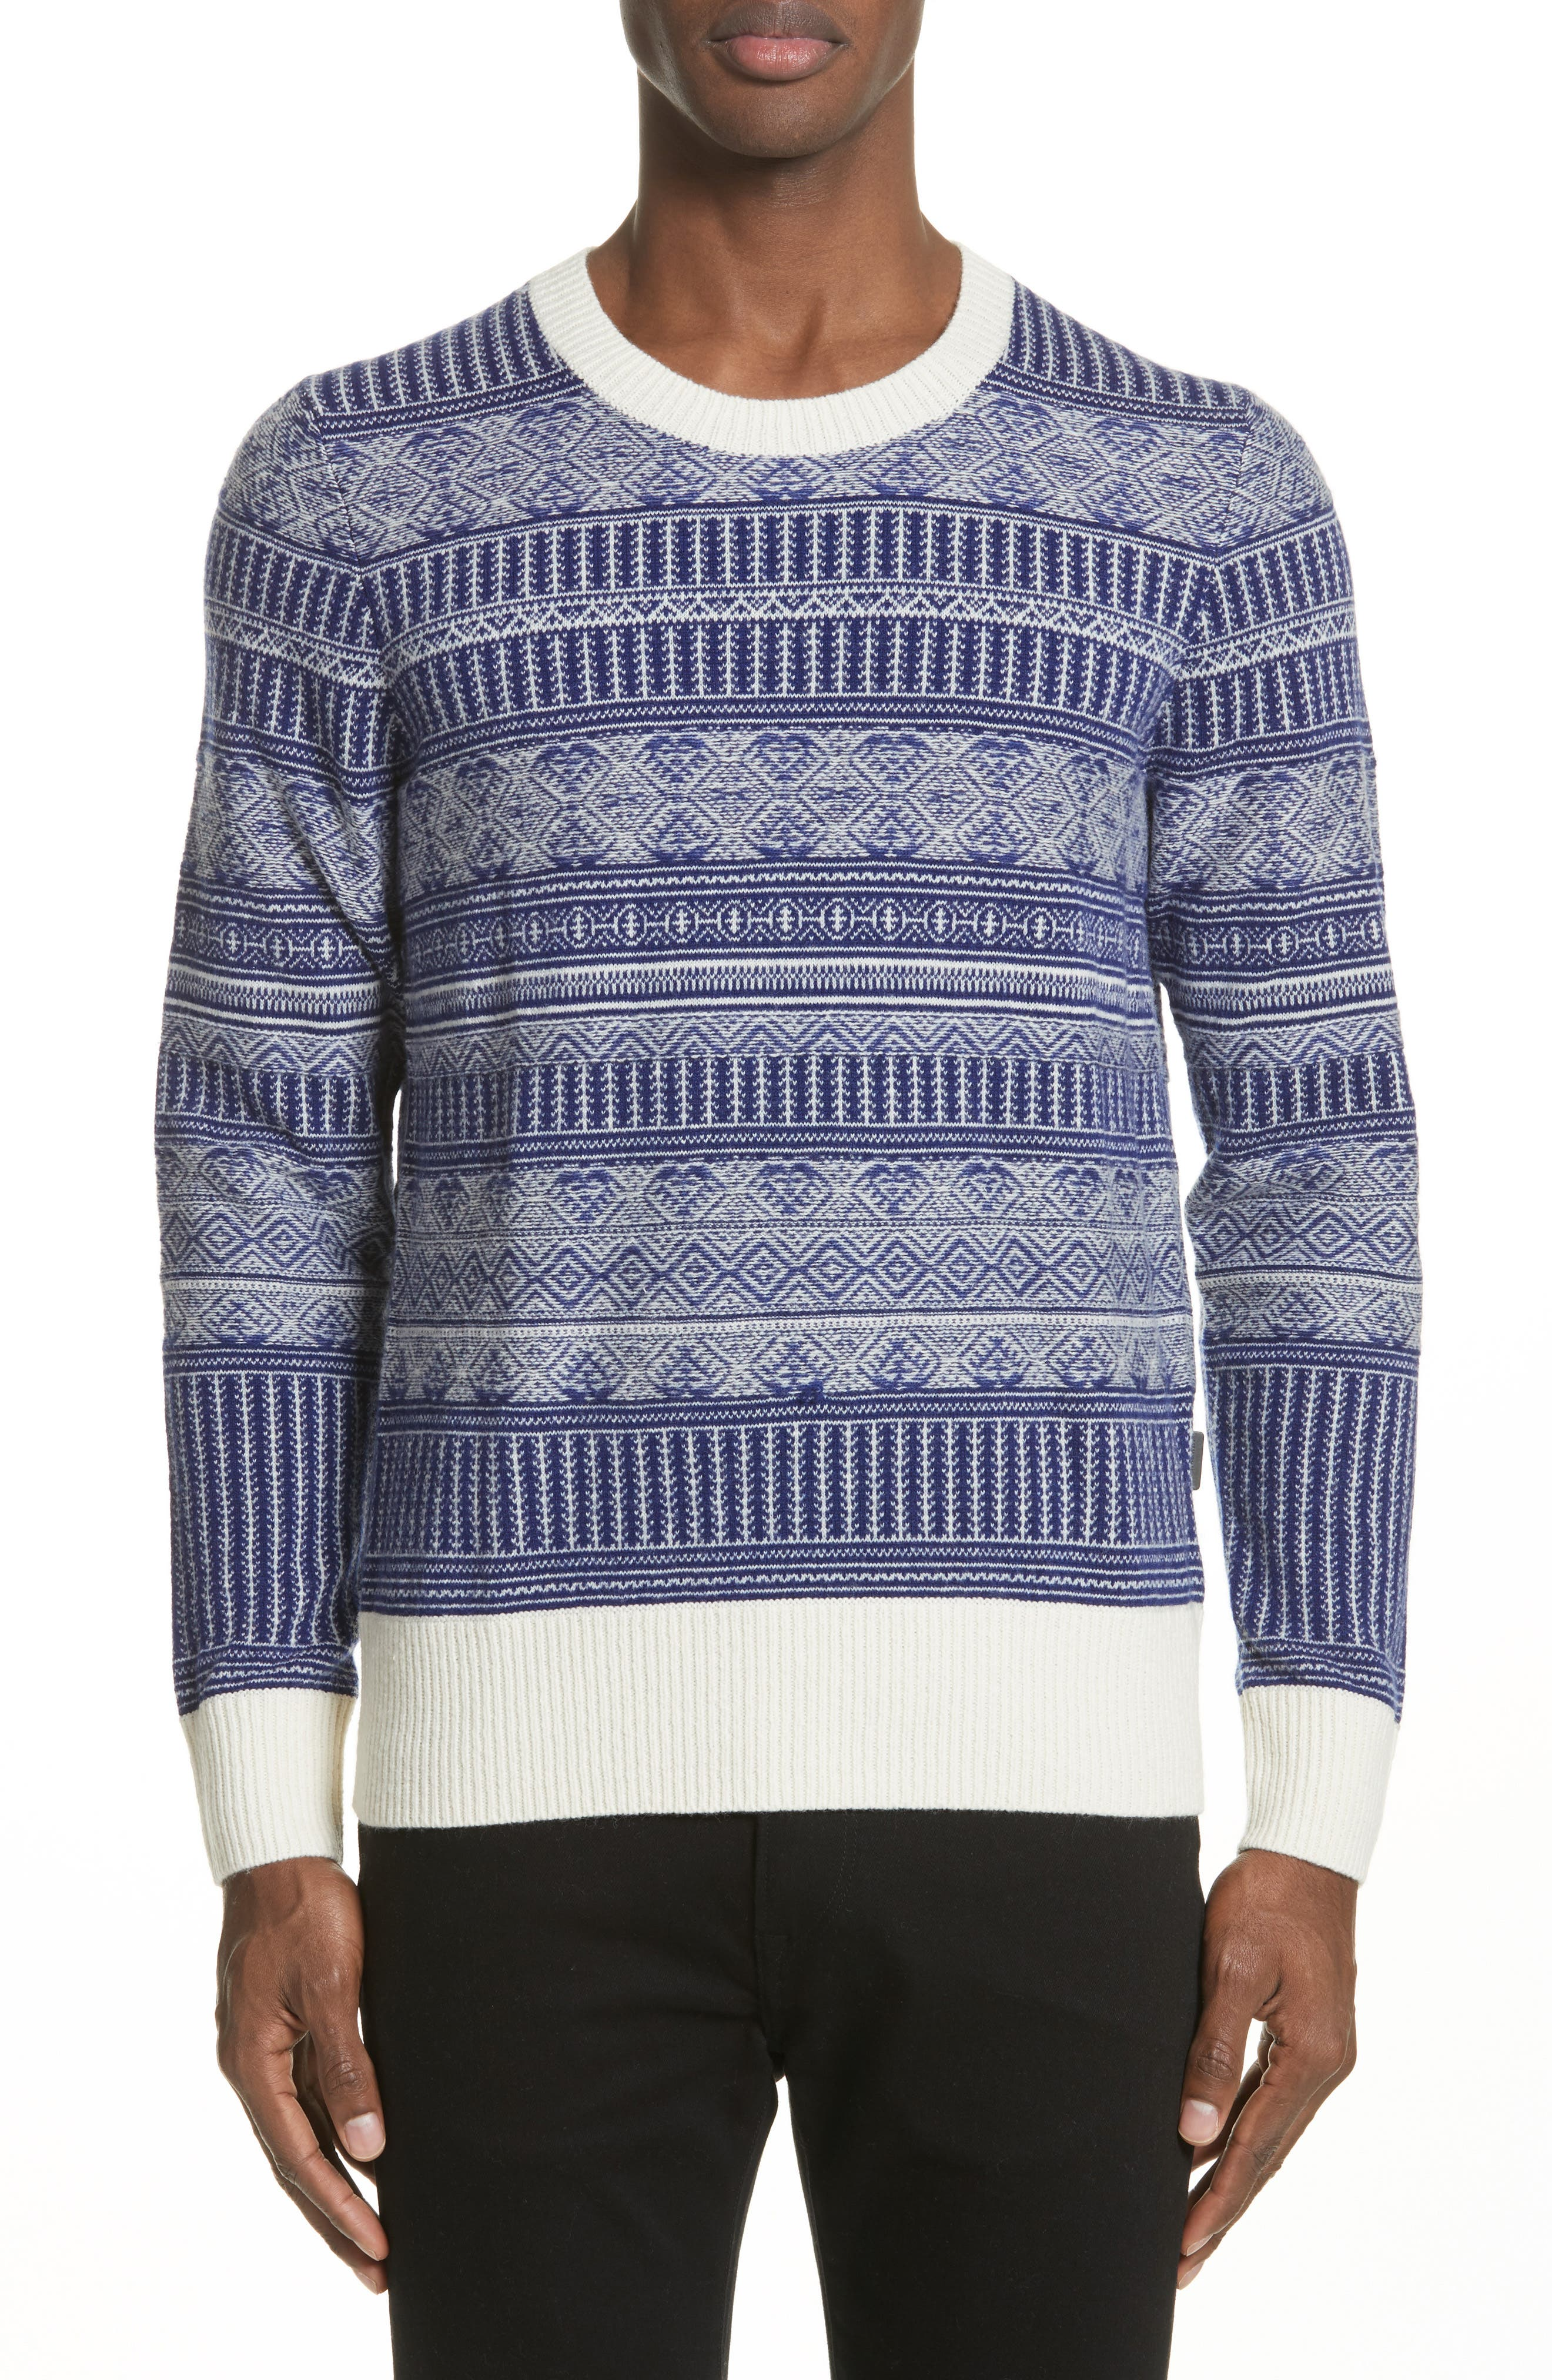 Tredway Wool & Cashmere Sweater,                             Main thumbnail 1, color,                             410